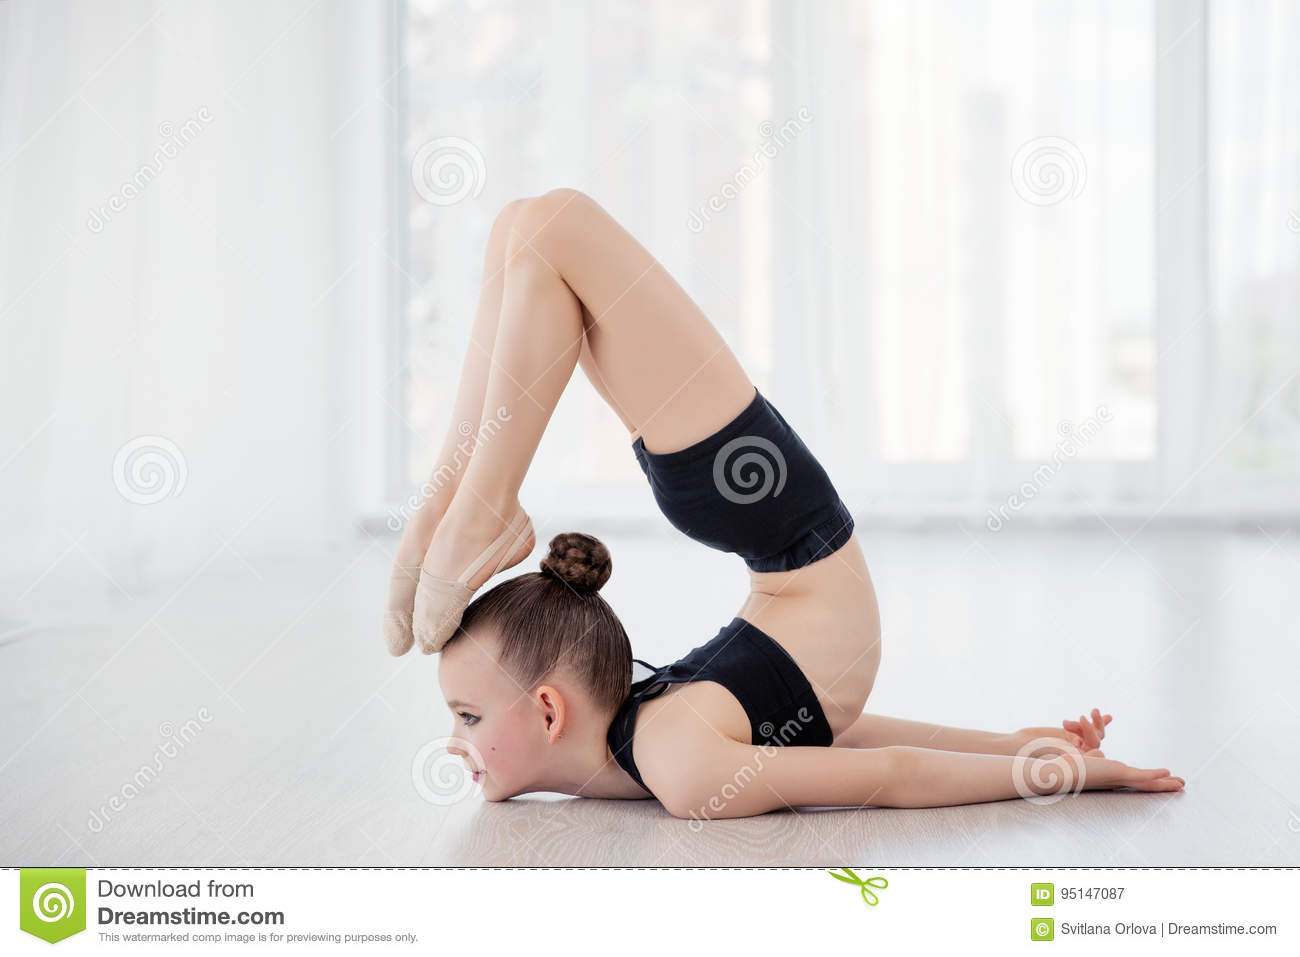 Flexible gymnast girls join. was